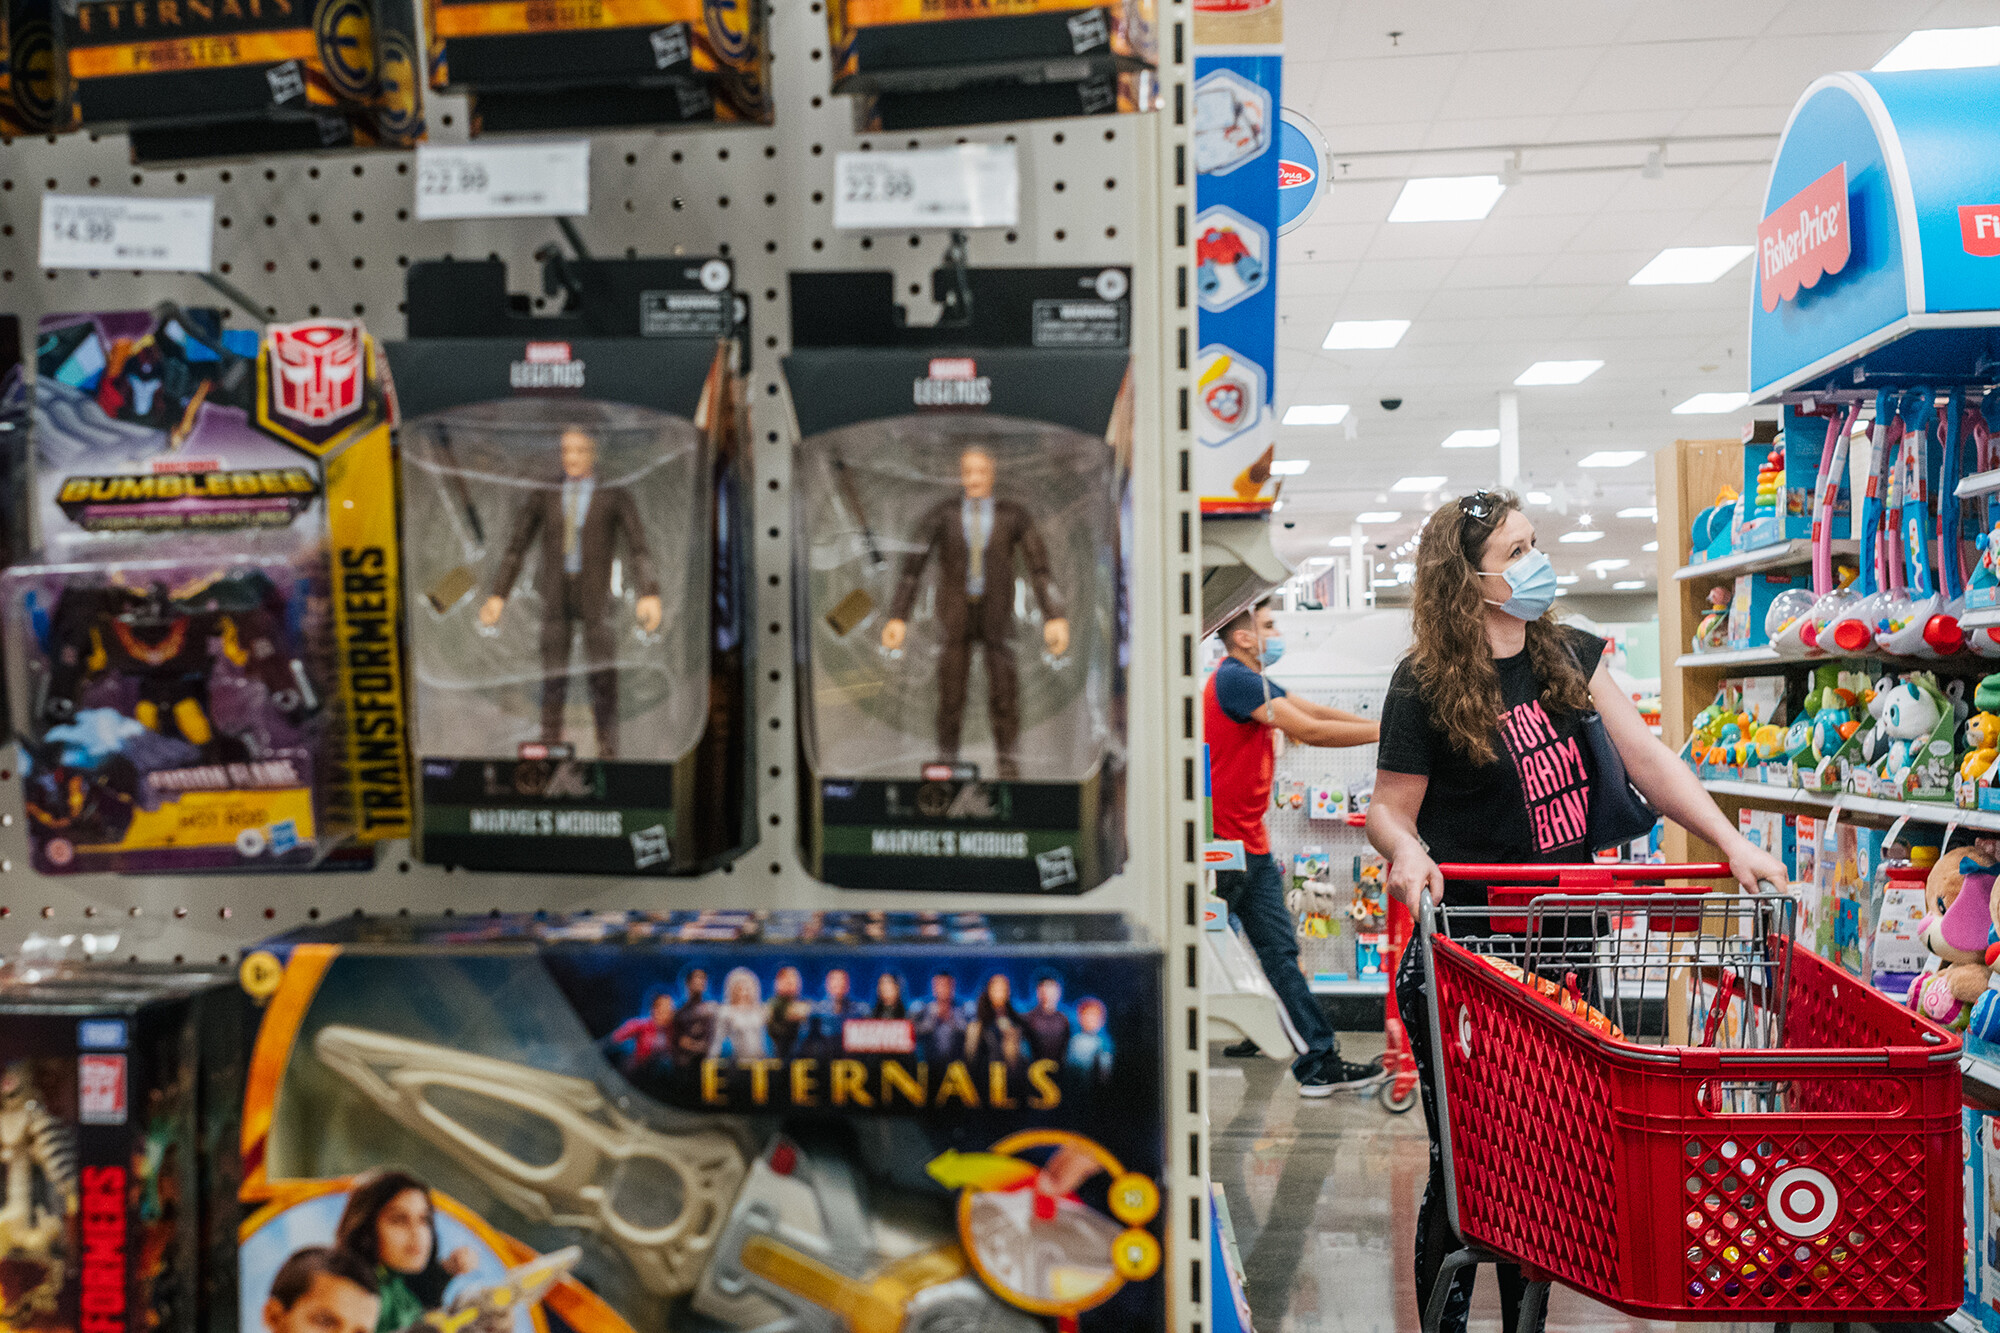 Consumer confidence rose in October. That's good news for holiday spending